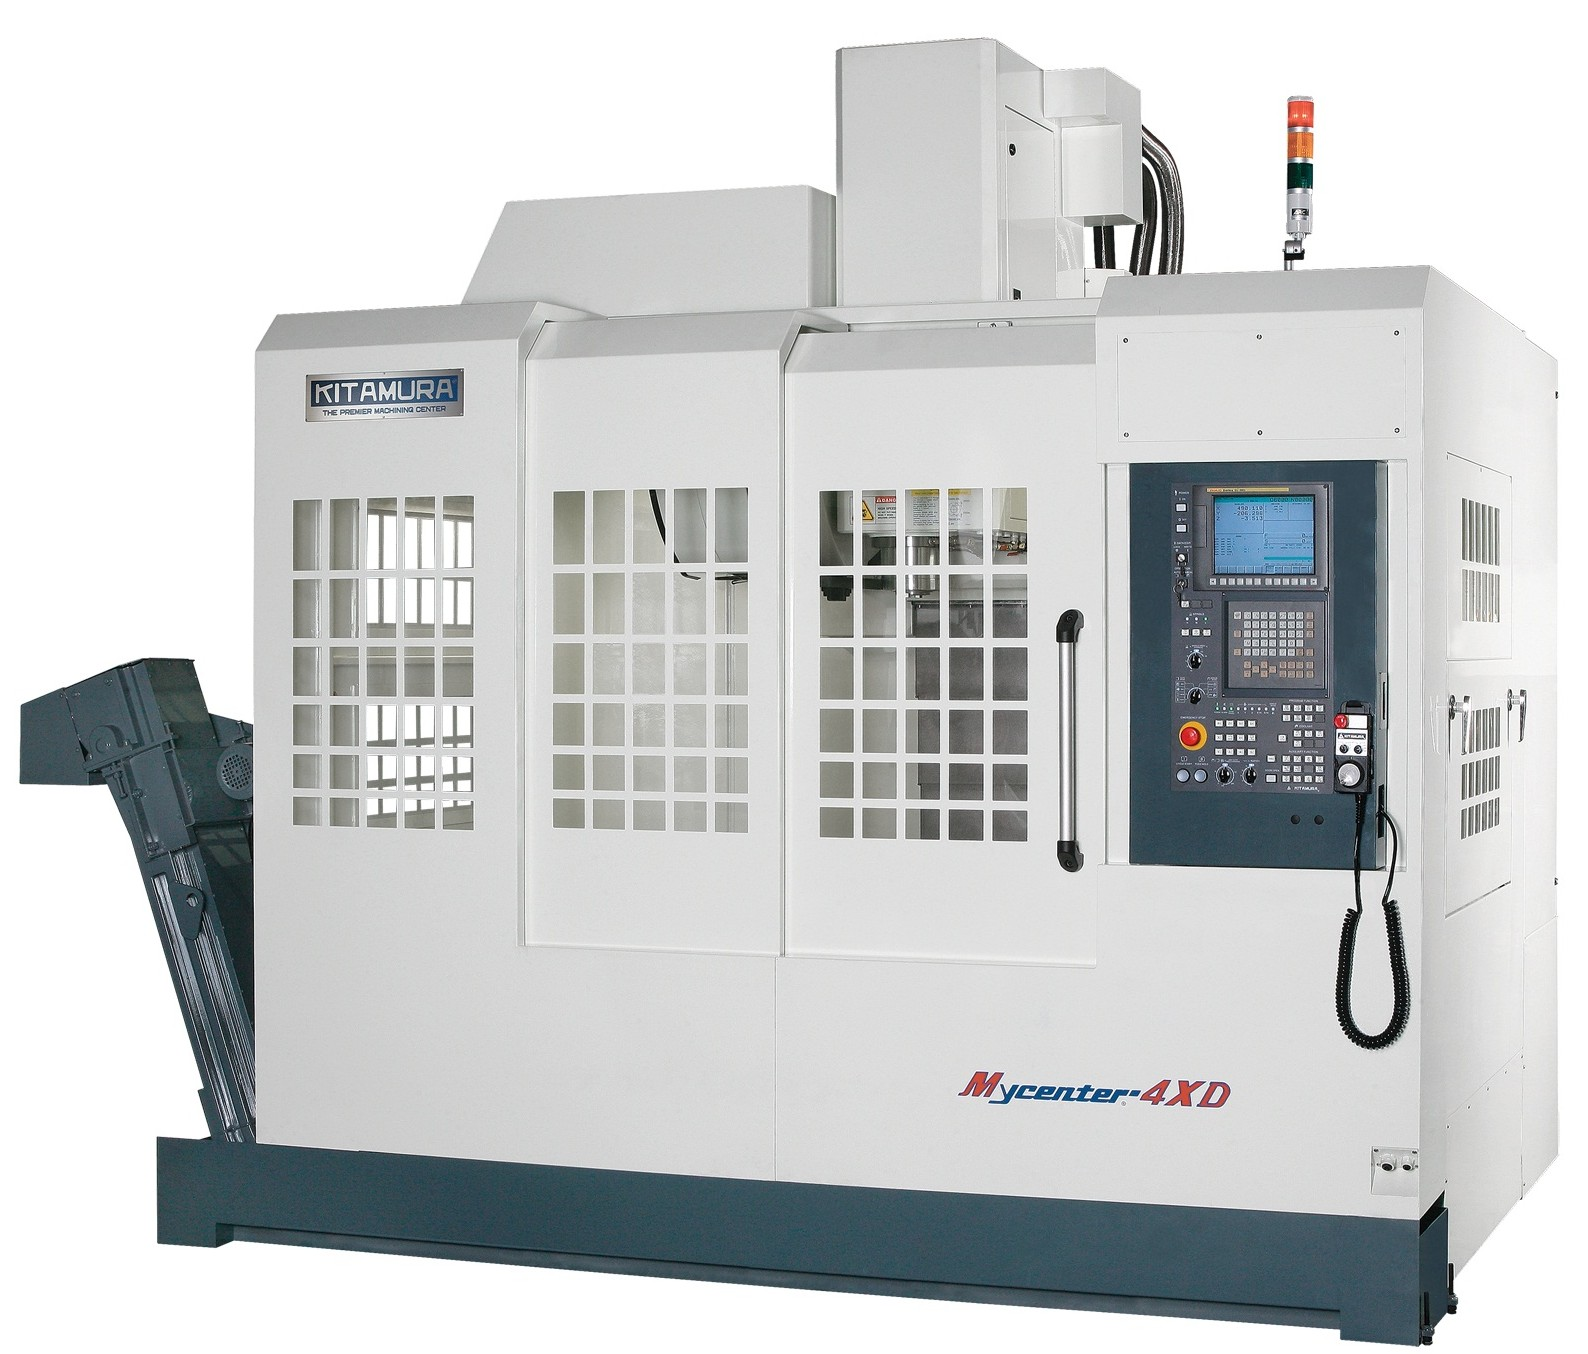 The Mycenter-4XD has high speed rapid feed rates of 1,417 ipm (X- and Y-axis), 1,181 ipm (Z-axis) inside a cavernous work envelope with a powerful 35 hp spindle for hard-to-machine materials.(Click on photo to enlarge it)